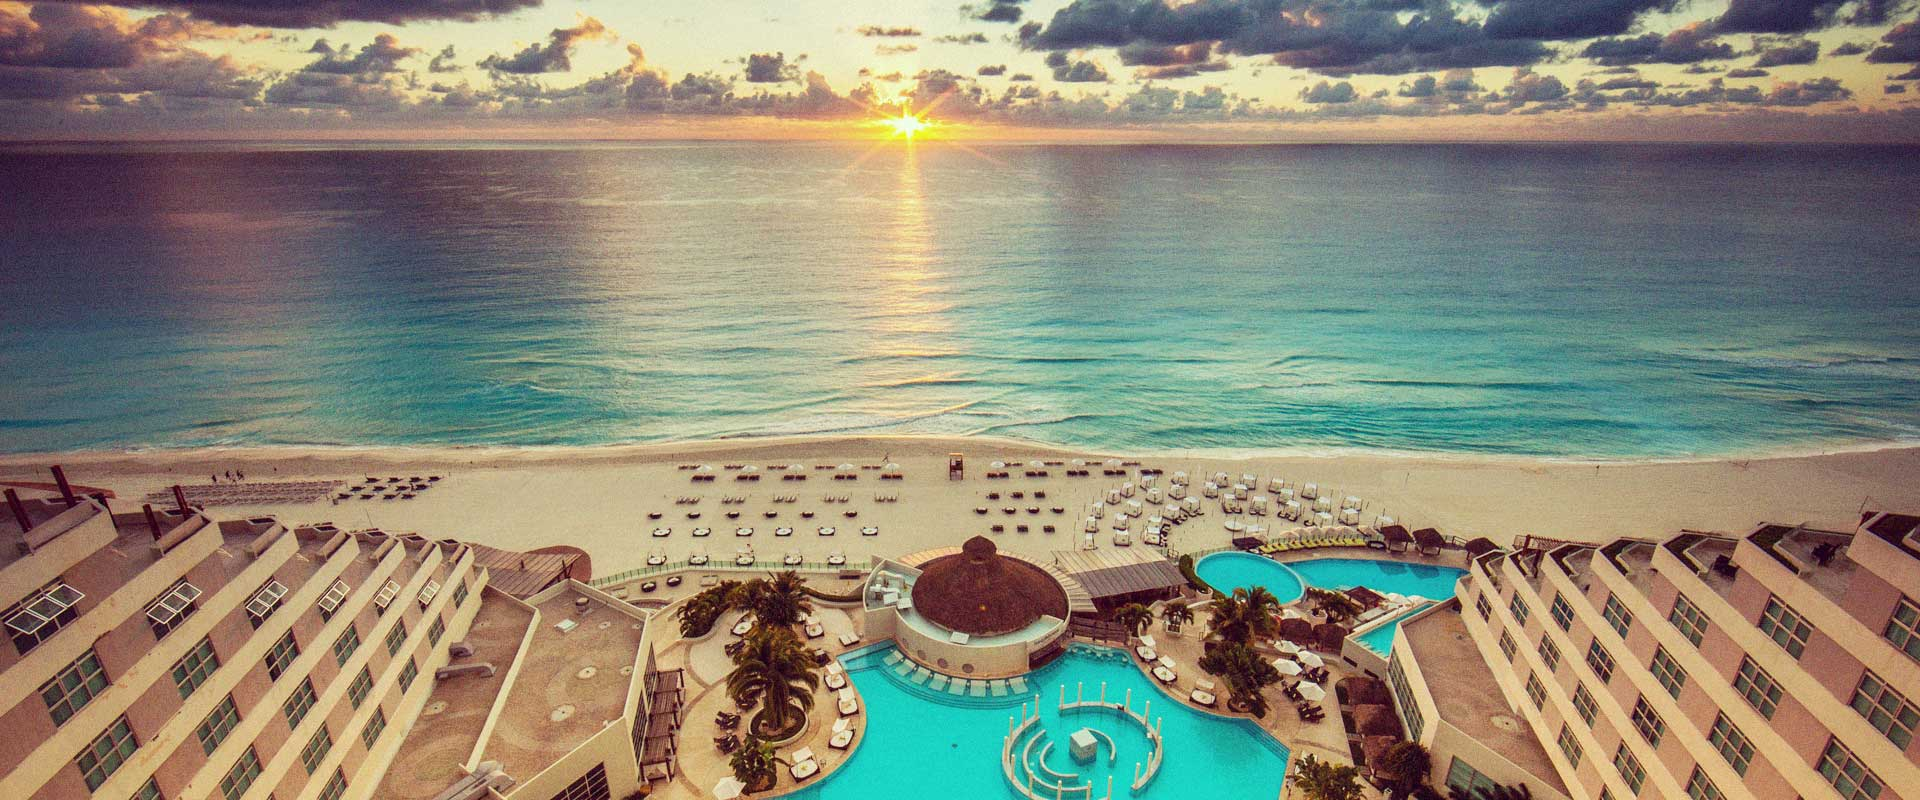 Me cancun resort for Getaway deals near me